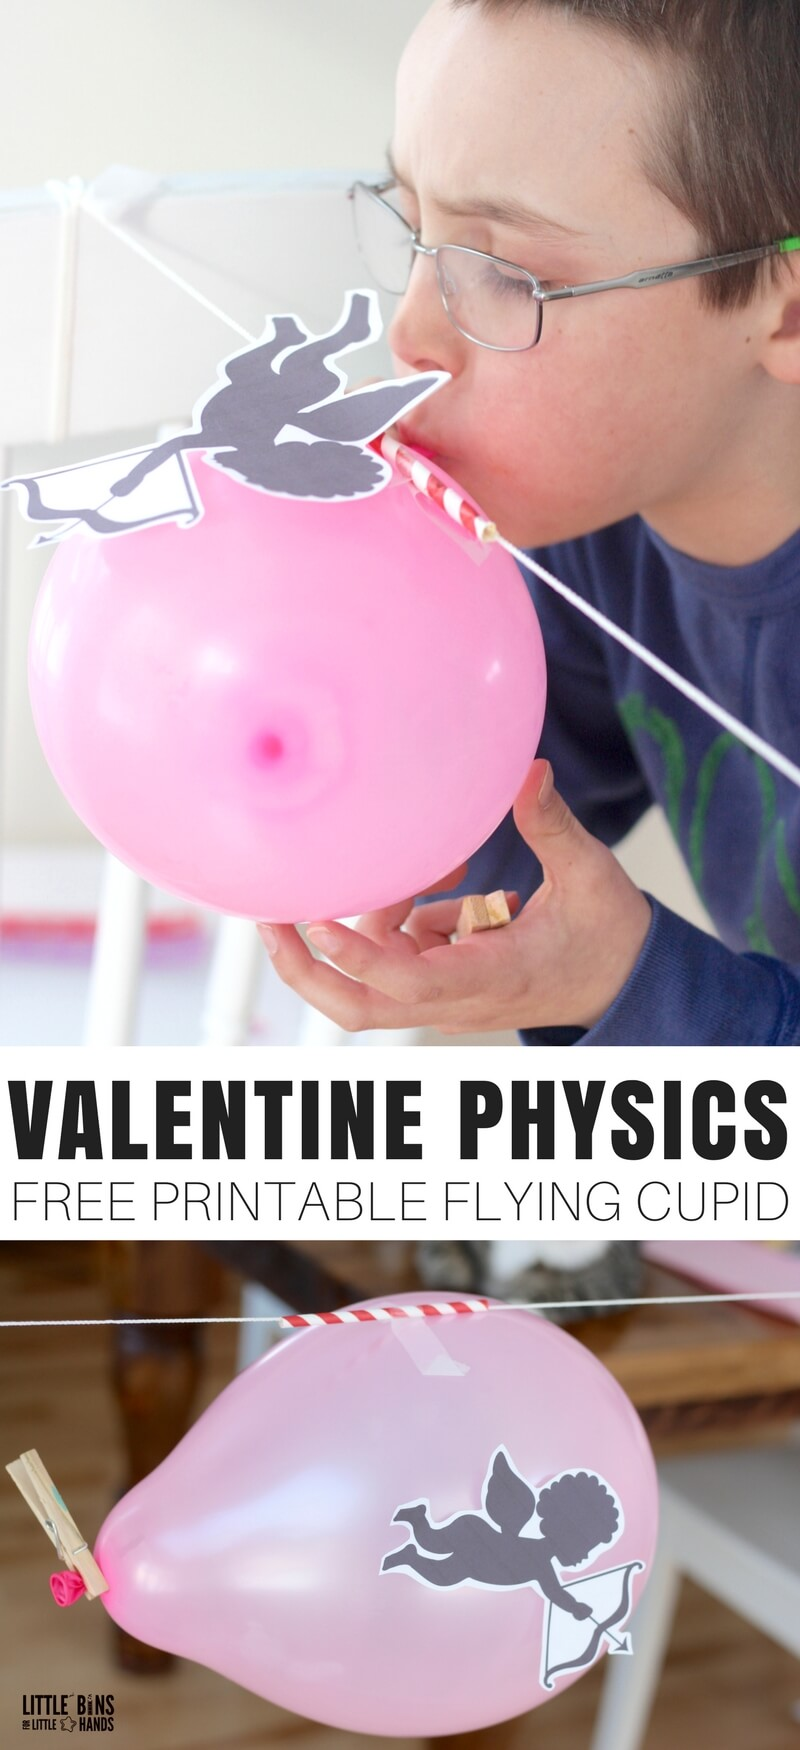 Valentines Day Physics Activities: Balloon Rocket and Newton's 3rd Law of Motion Action Reaction